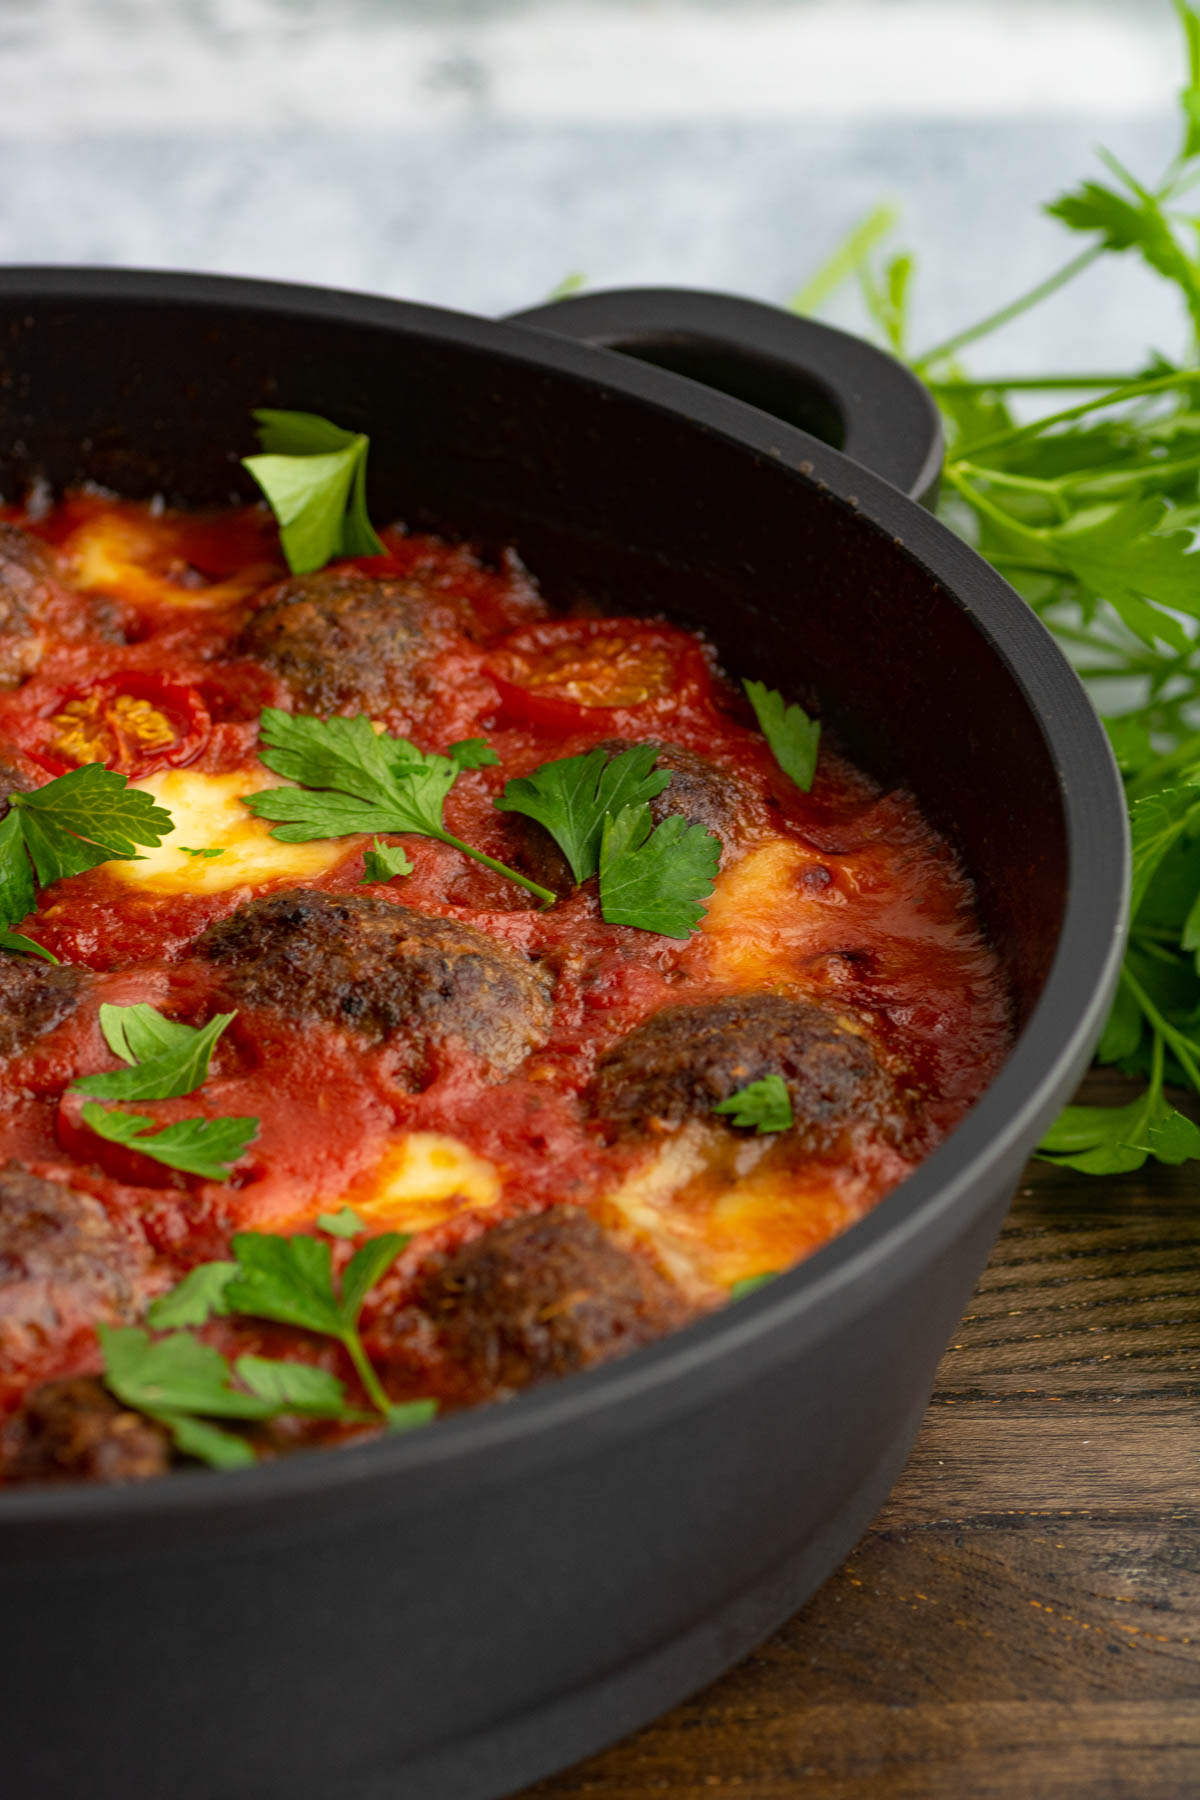 A pan of Oven Baked Meatballs in a rich tomato sauce with melted cheese garnished with Italian parsley.